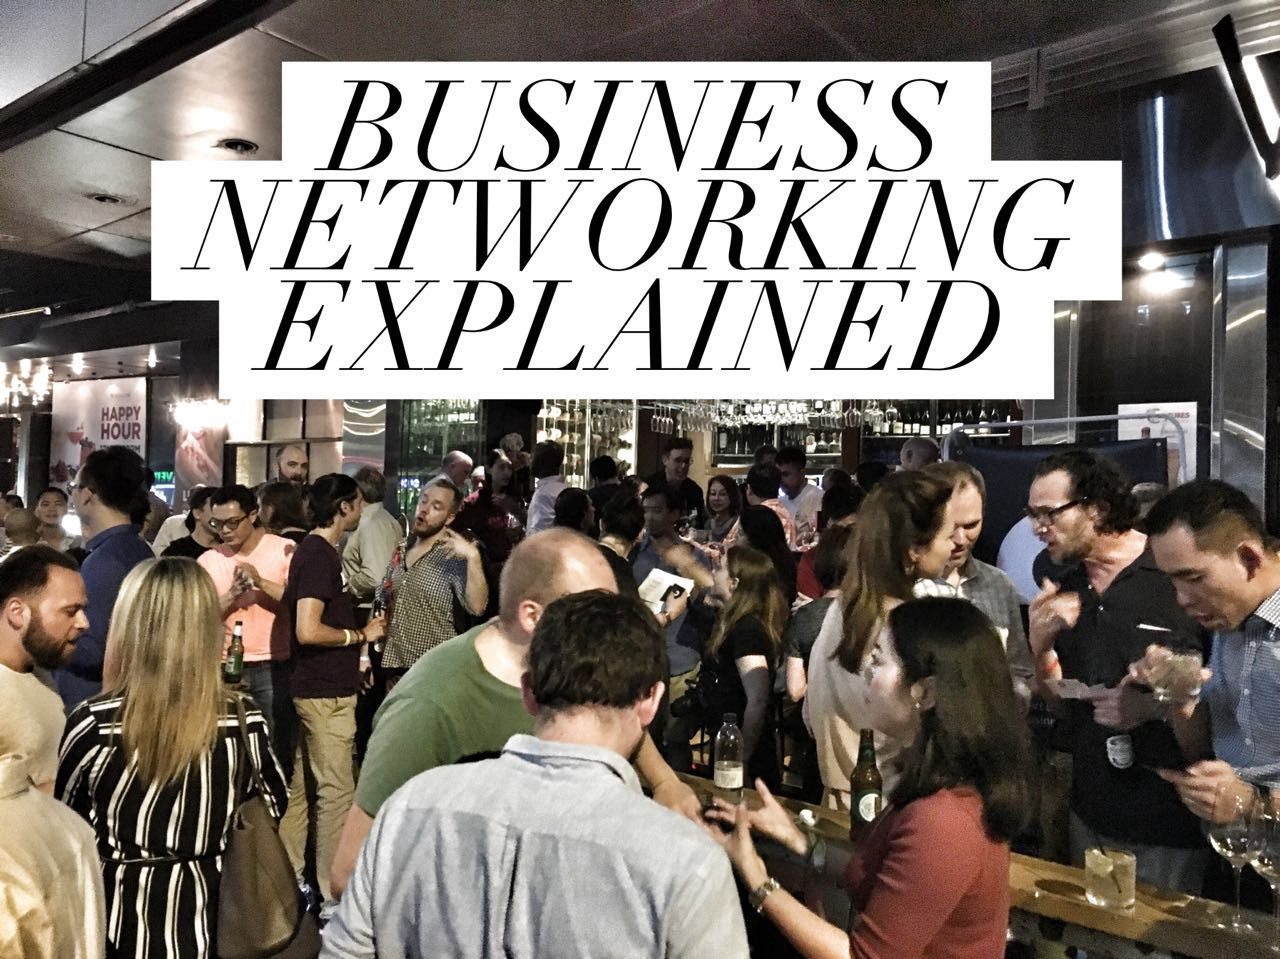 Meet The Right People: The Ultimate Guide to Business Networking